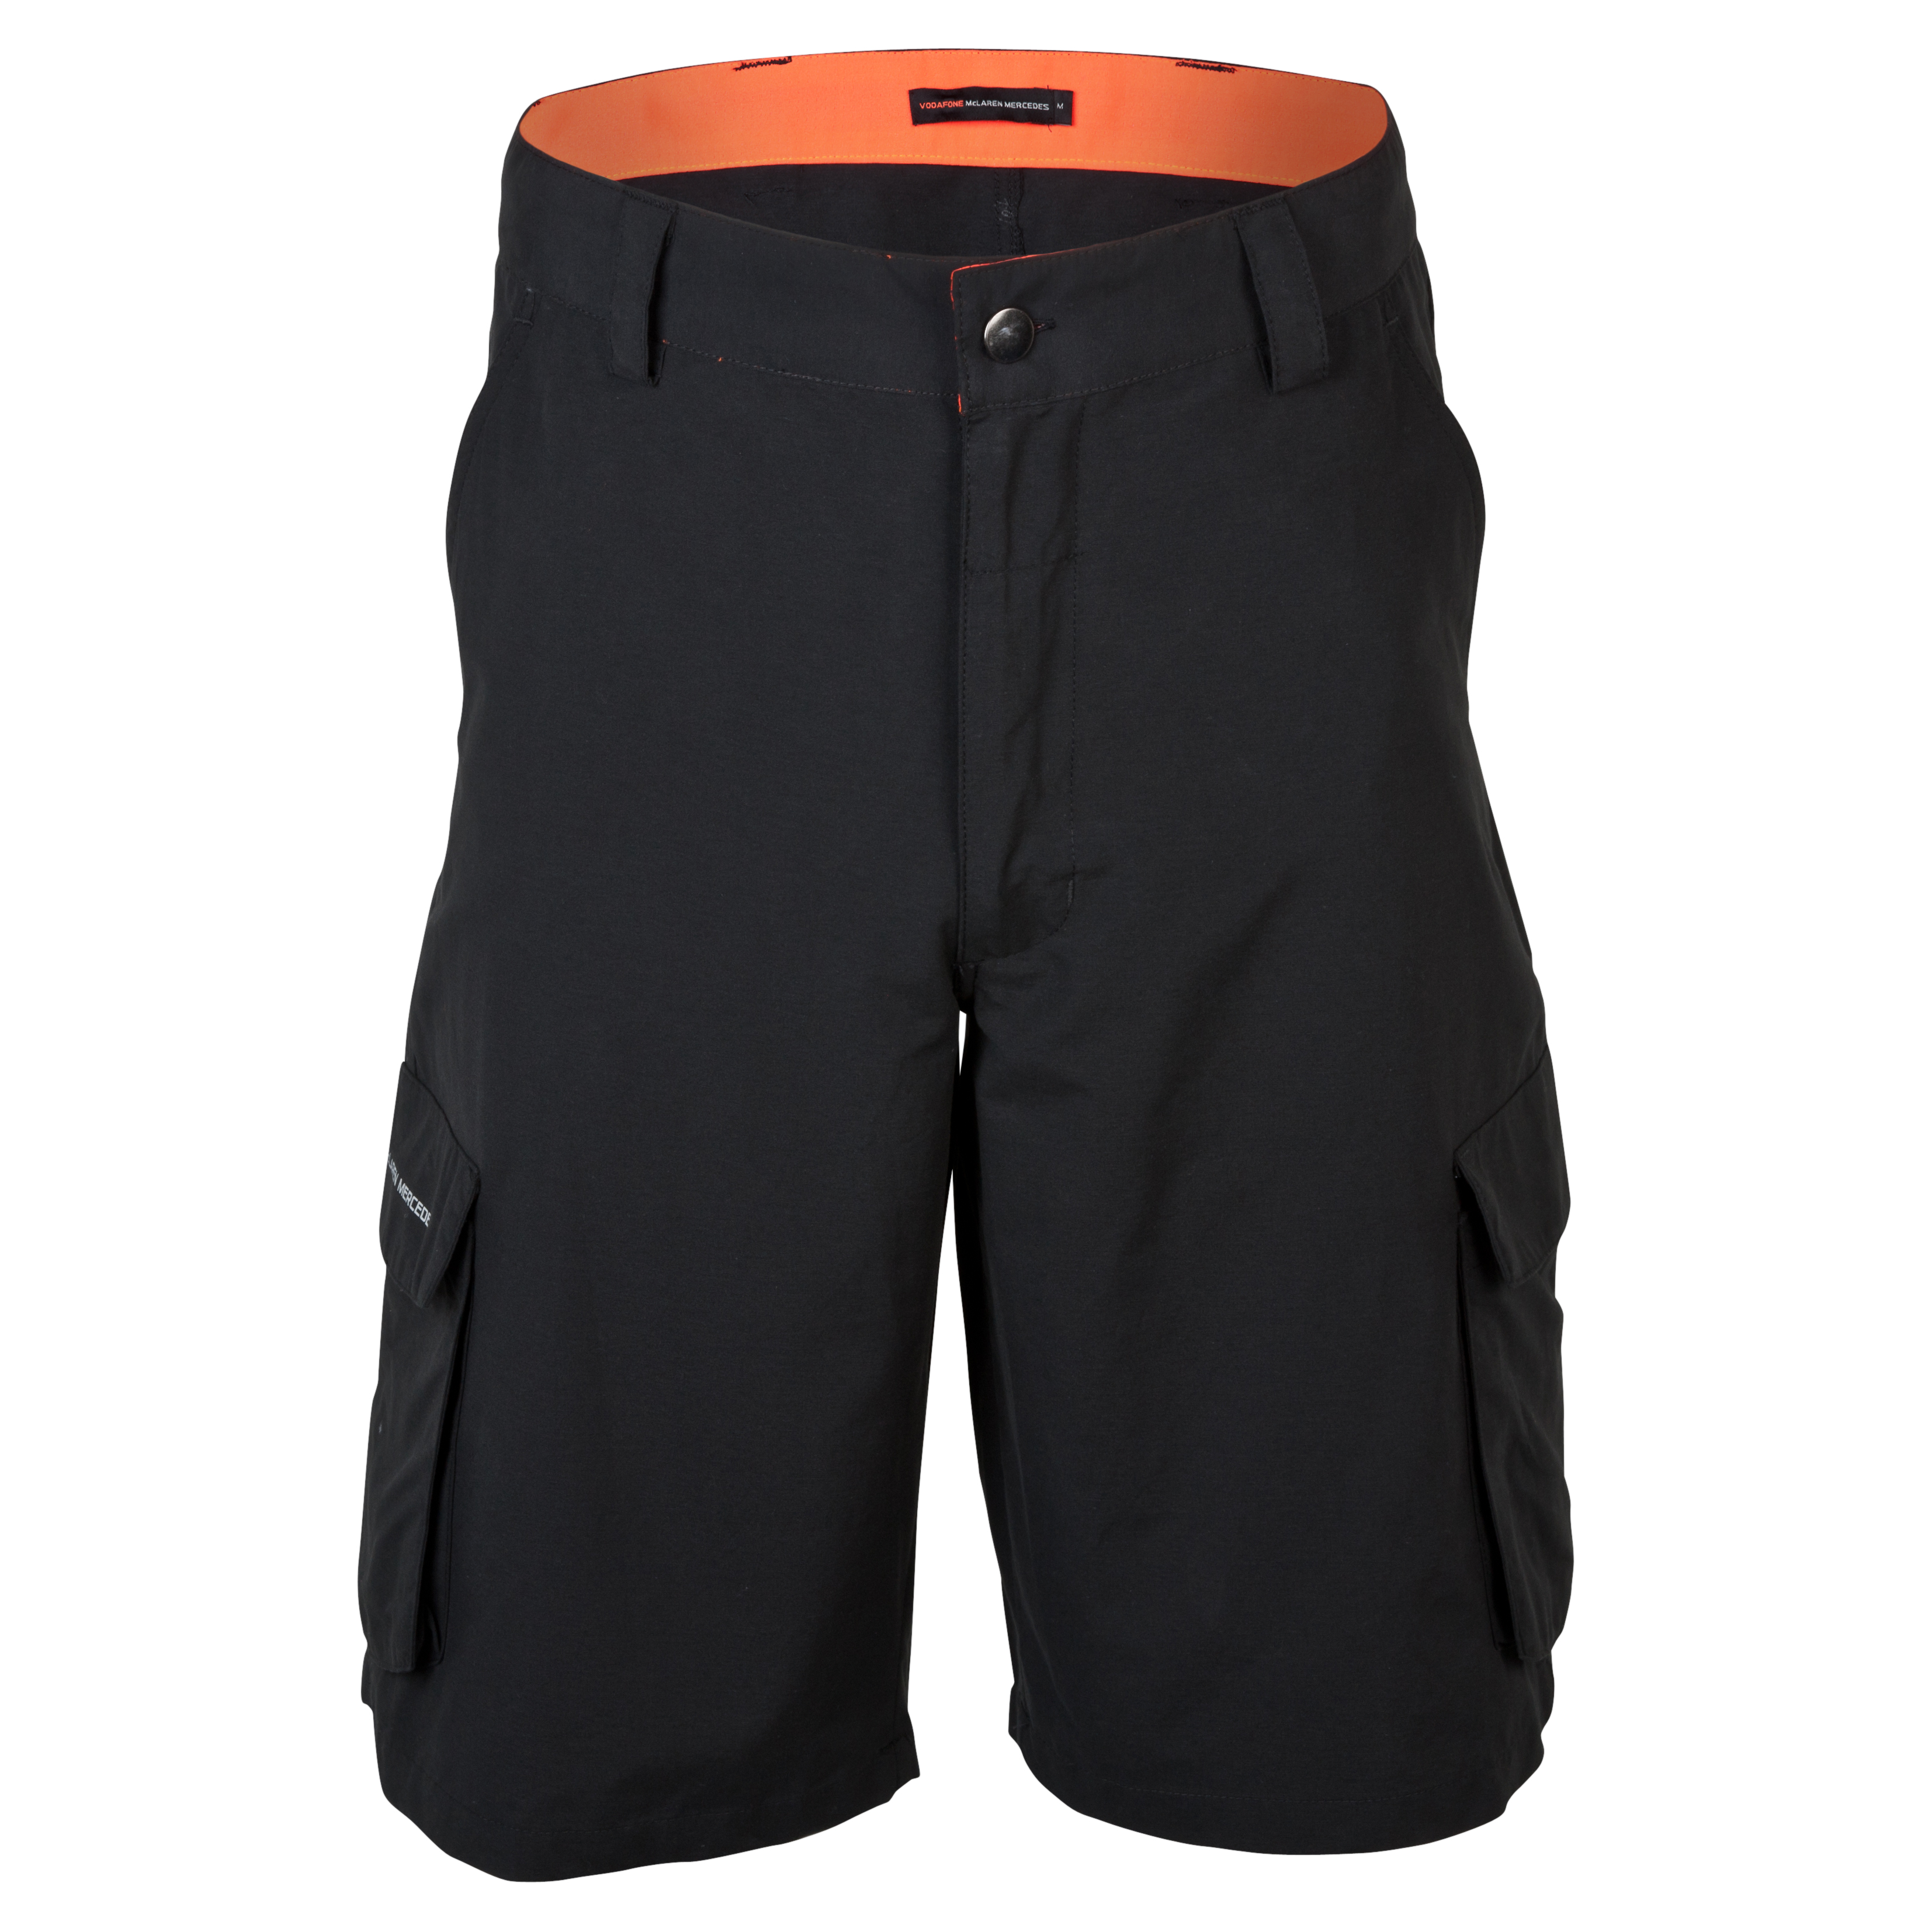 Vodafone McLaren Mercedes 2013 Team Shorts